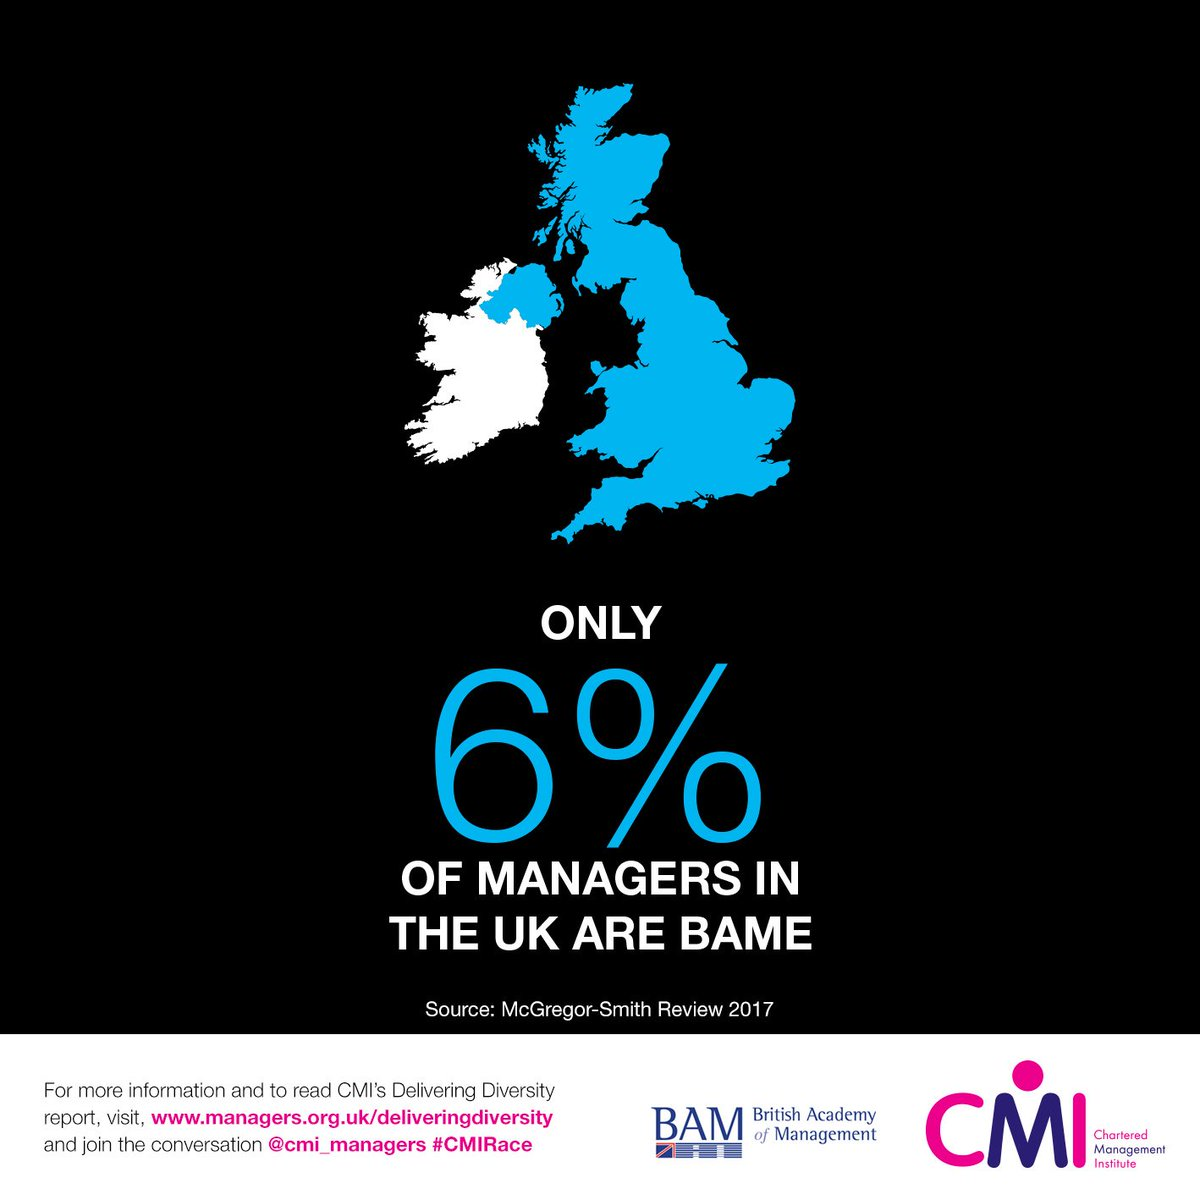 #BAME people are under-represented in #management roles. It's time to take action. #CMIRace  https://t.co/KCKyLmtksN https://t.co/E5VKFXGEHw